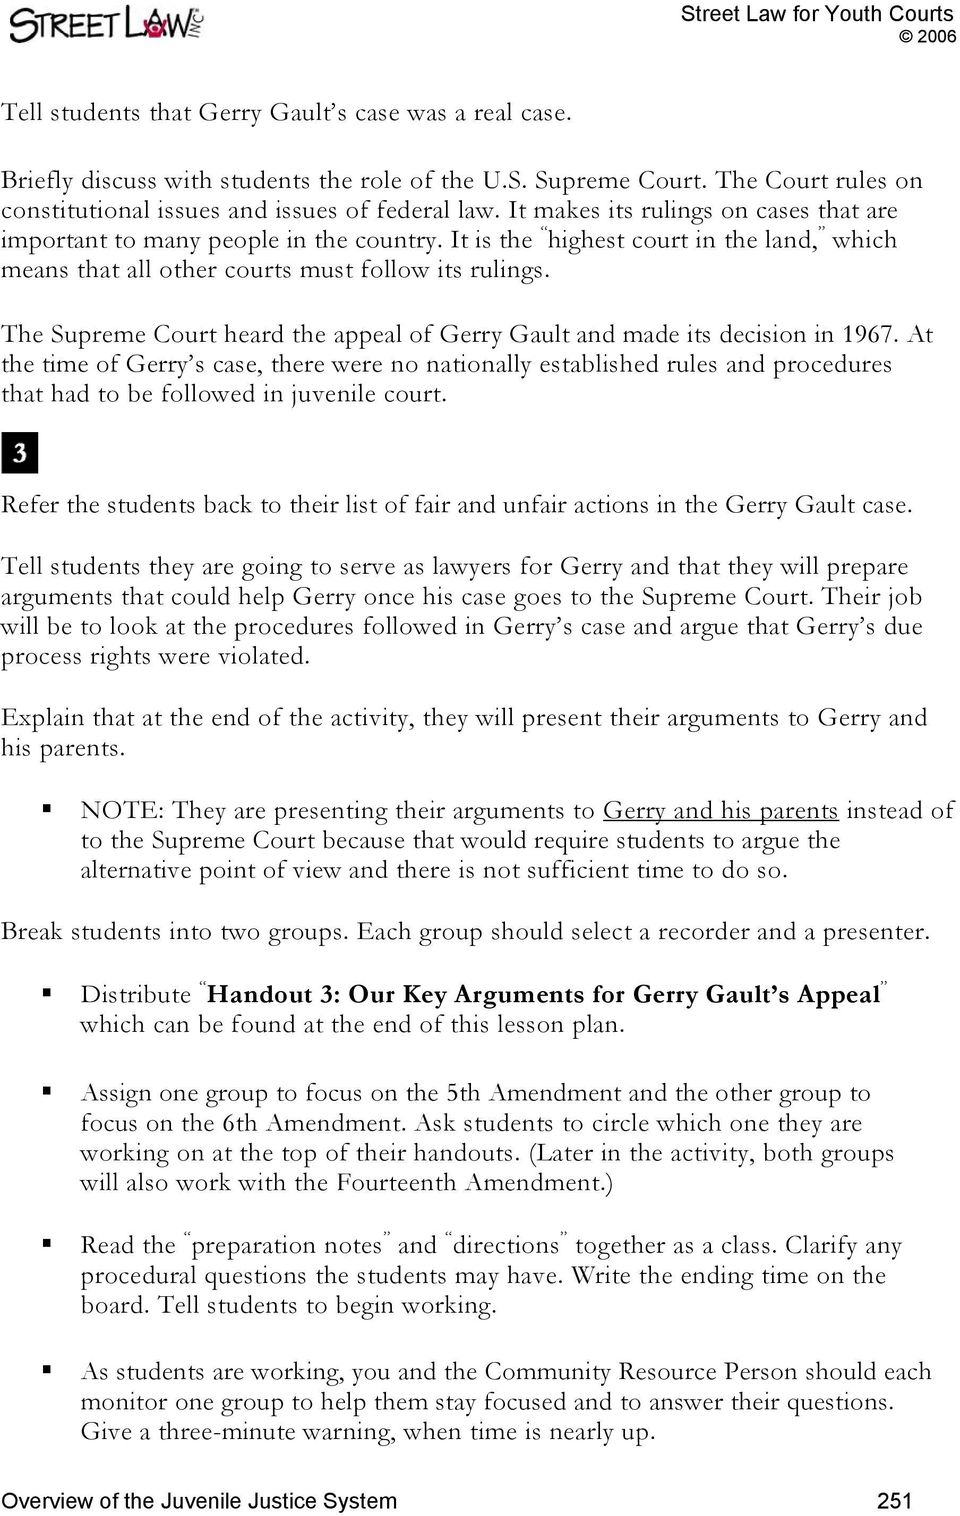 The Supreme Court heard the appeal of Gerry Gault and made its decision in 1967.